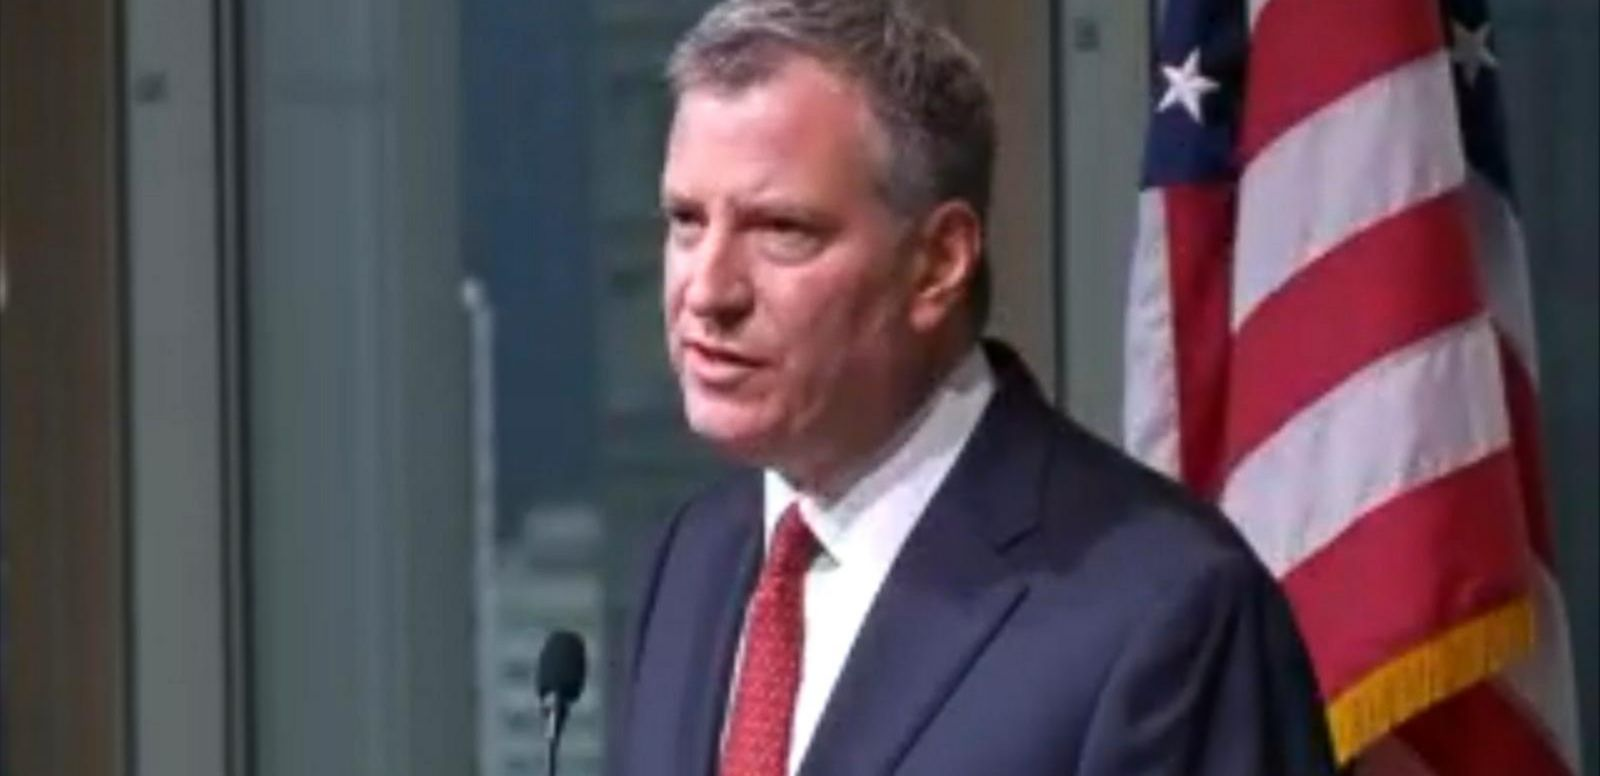 VIDEO: Mayor Bill de Blasio comments on the deaths of Officers Rafael Ramos and Wenjian Liu.